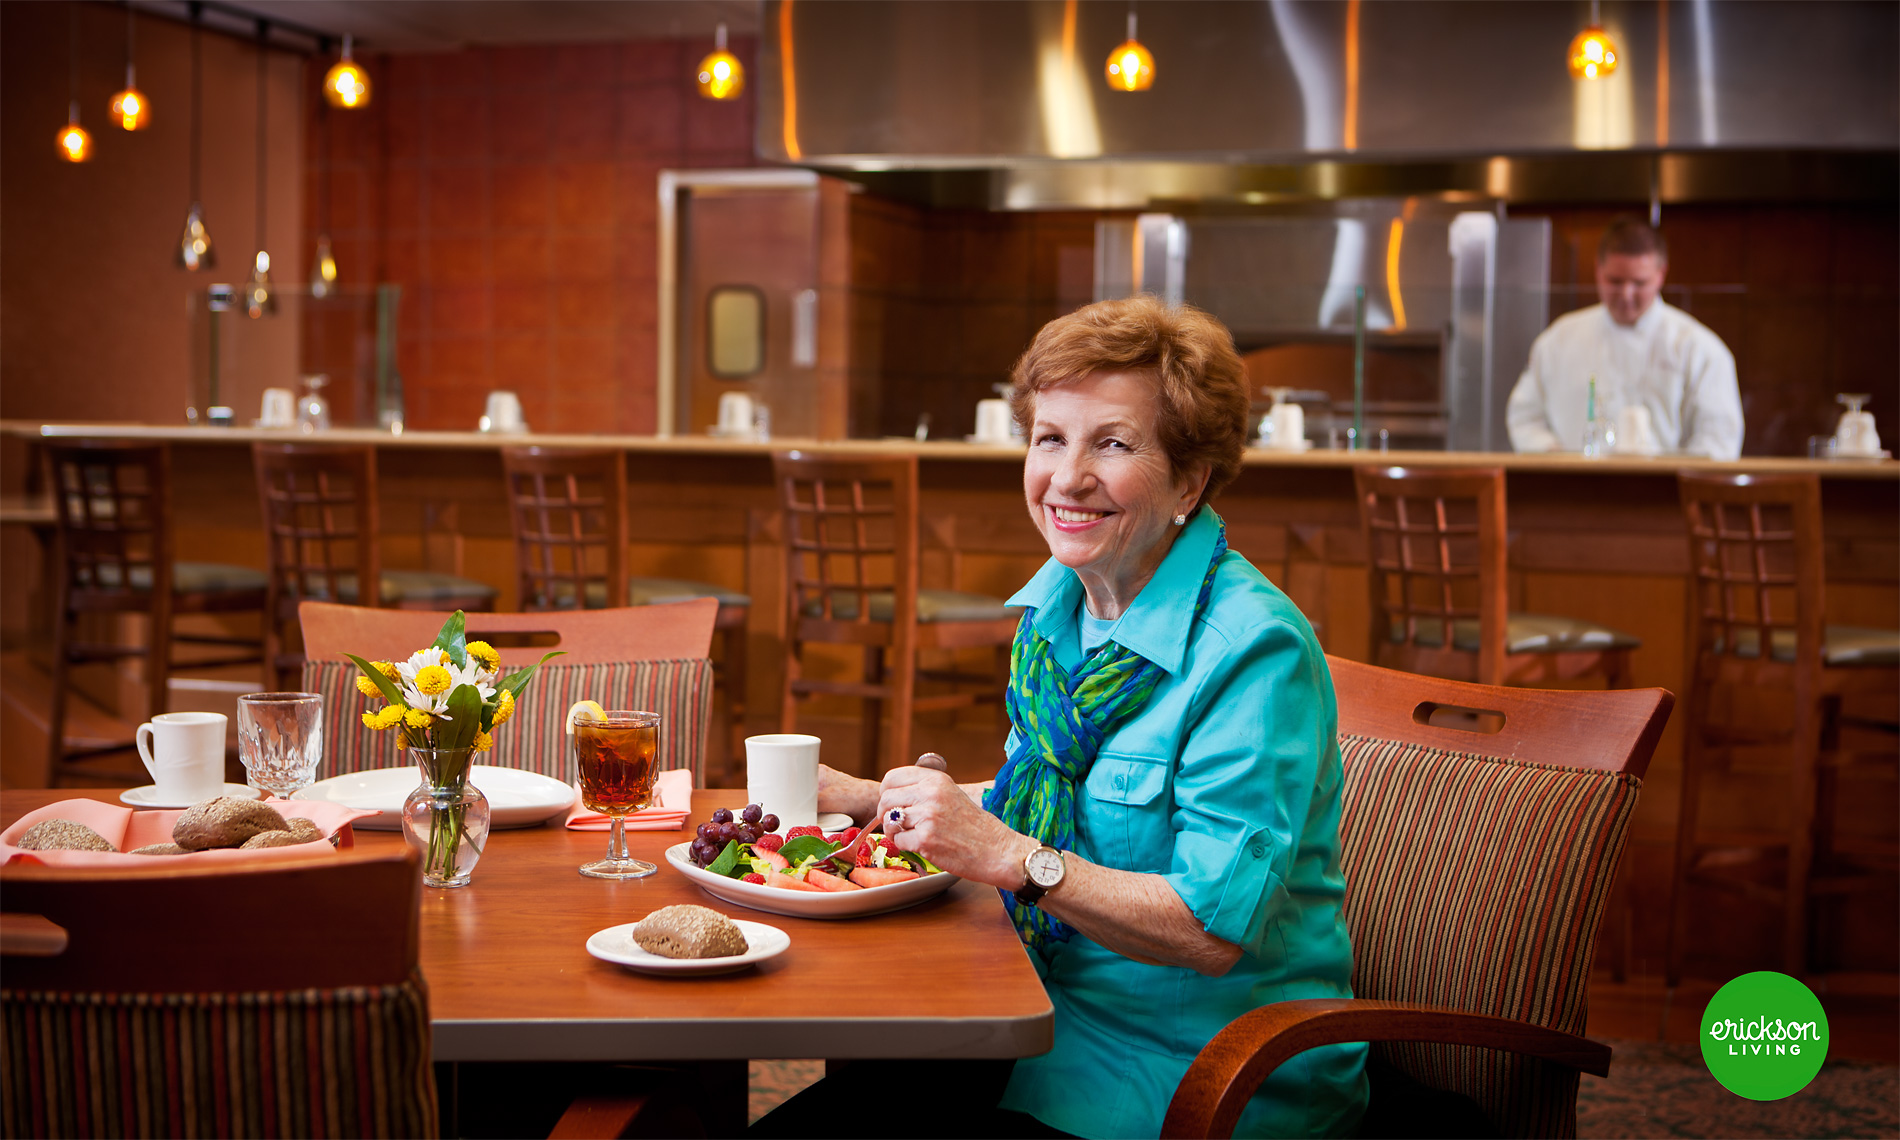 scott-stewart-lifestyle-portrait-for-senior-living-center-in-dining-hall-ann-arbor-commercial-photographer